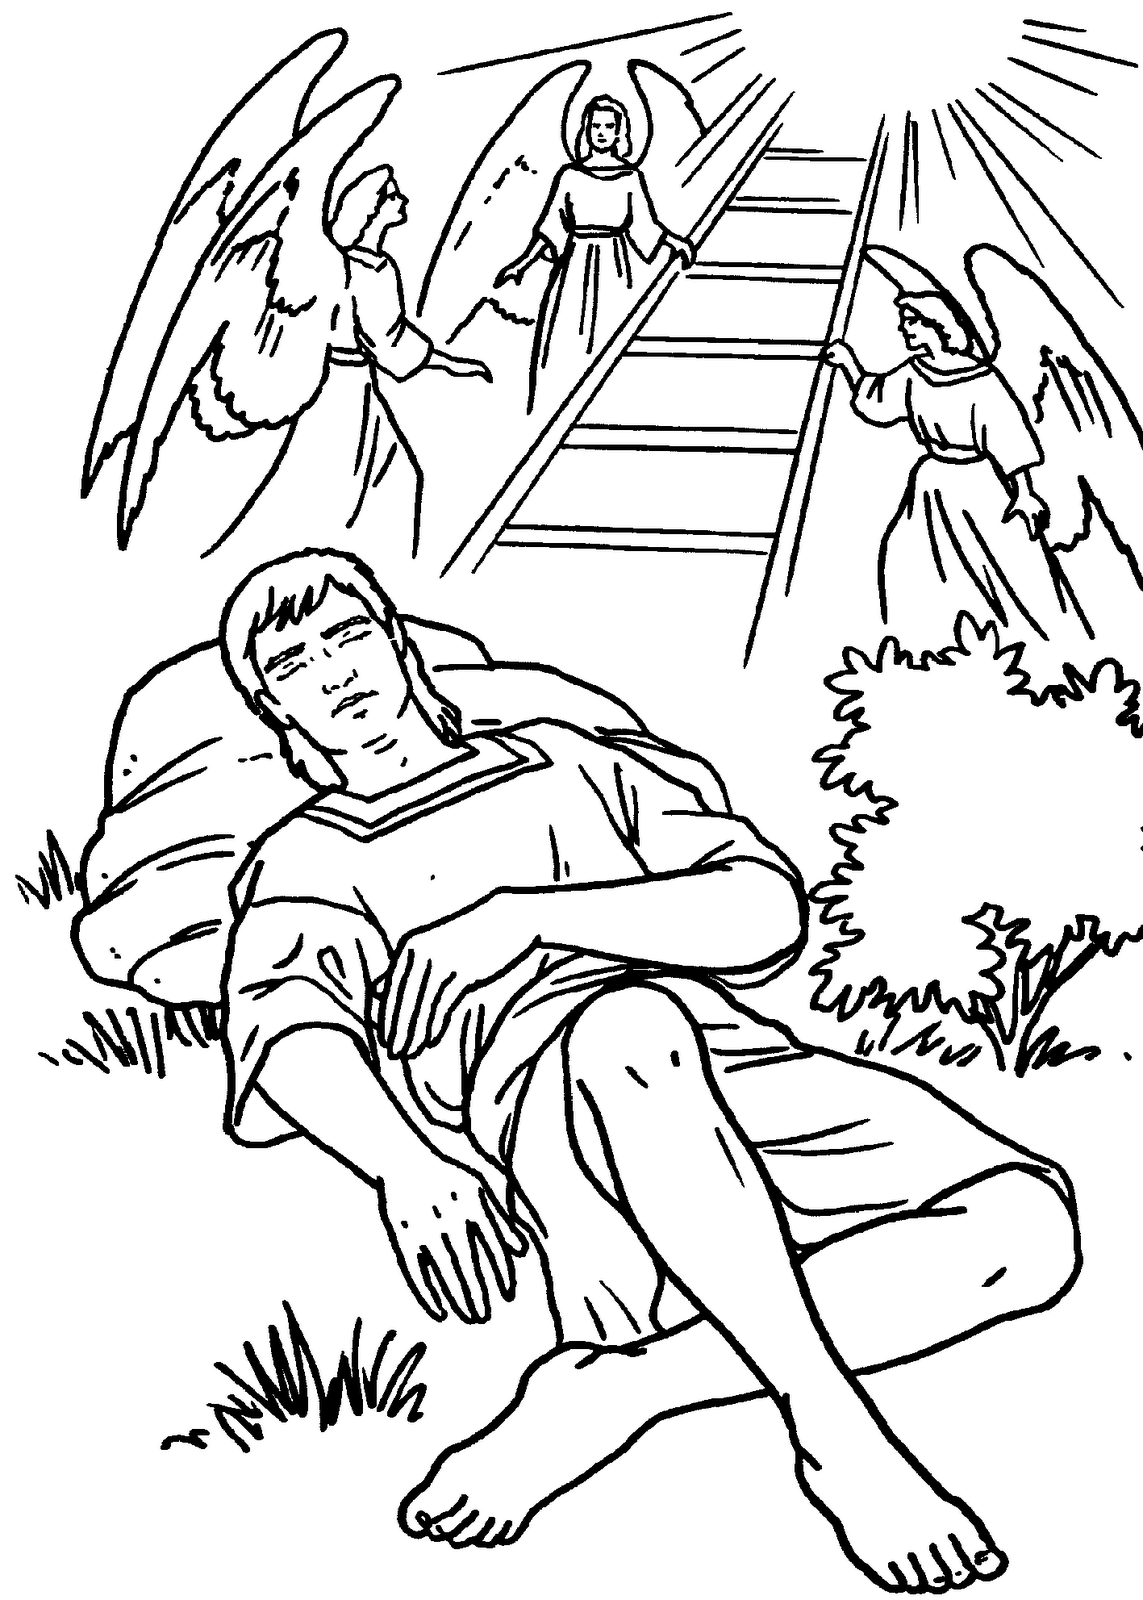 Joshua 1 9 Coloring Pages http://imagixs.com/joshua-and-the-walls-of-jericho-coloring-page/